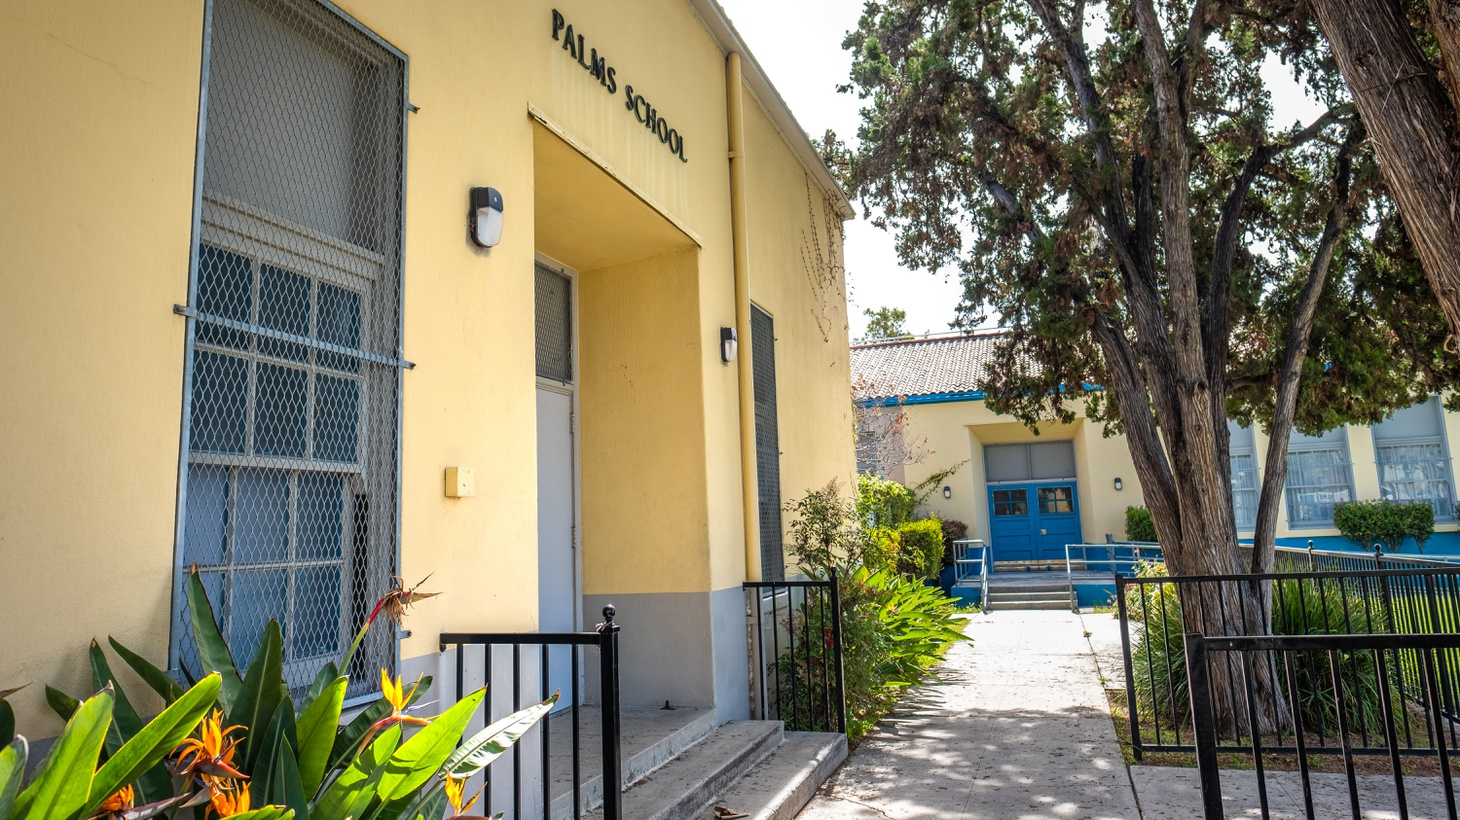 Palms Elementary School and other LAUSD campuses are expected to reopen in the fall. Joseph Allen, a professor at Harvard, says there are several benefits to students returning to in-person classes.